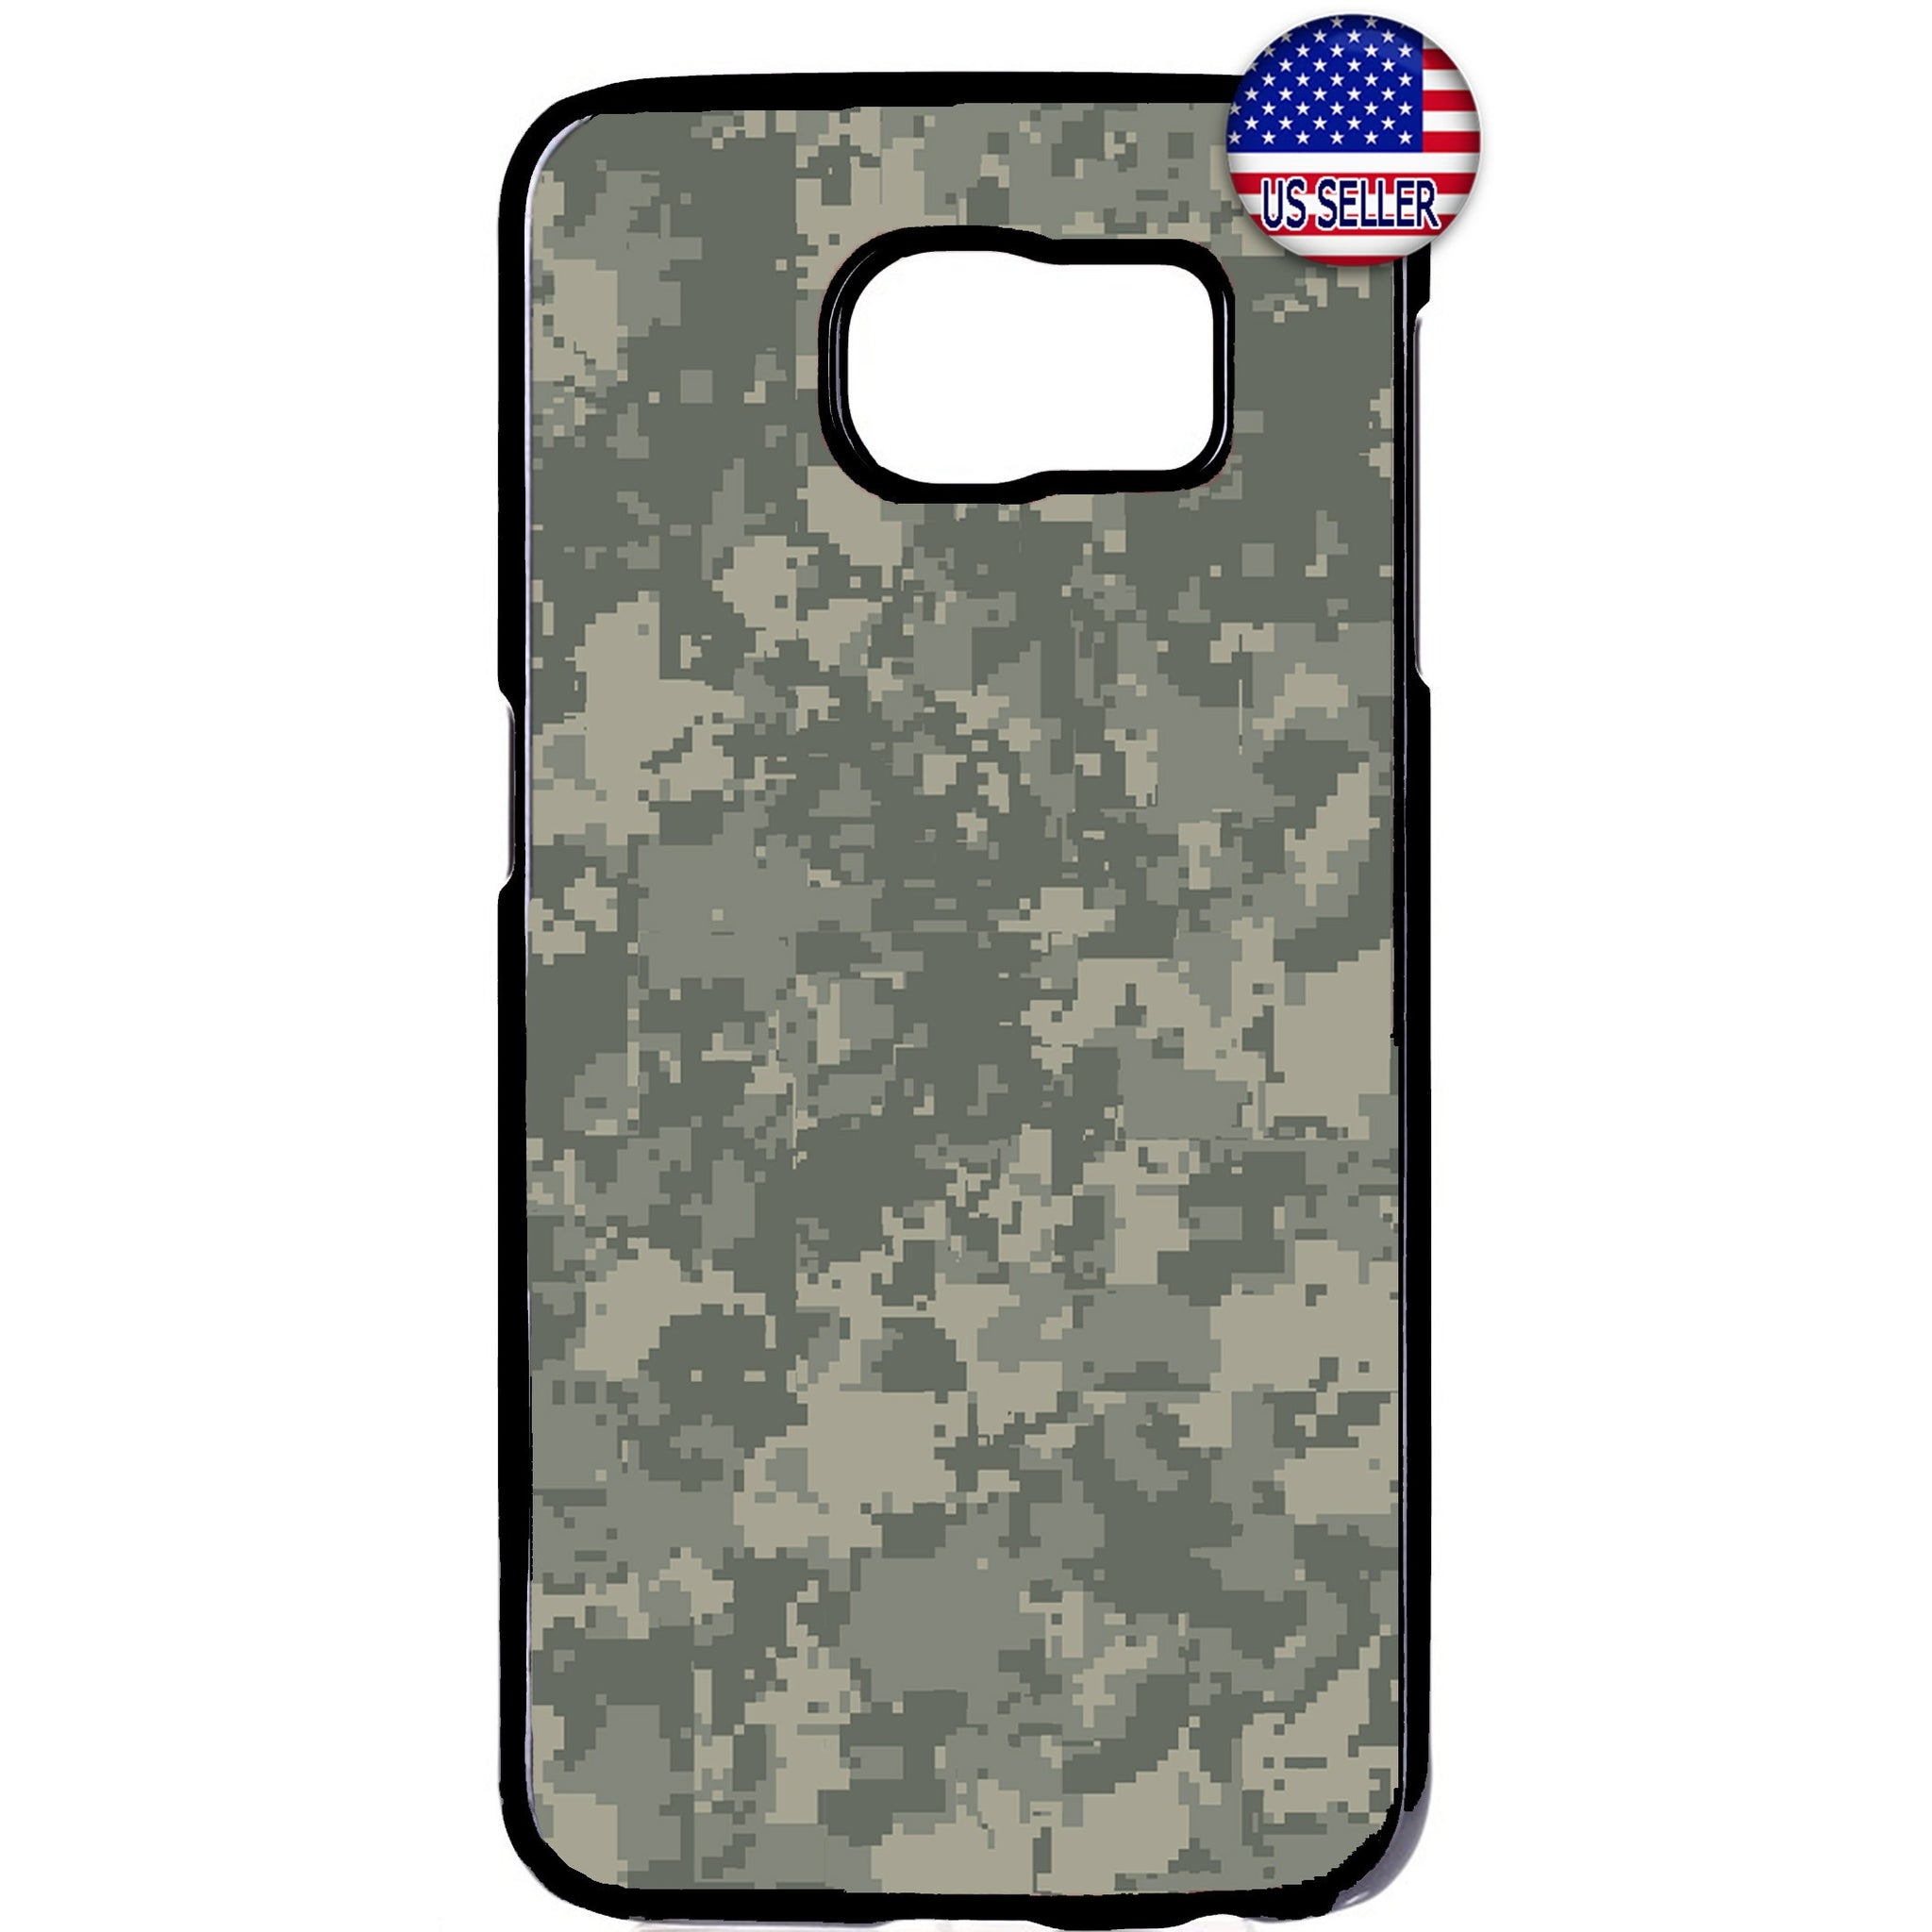 Digital Camouflage Marines Rubber Case Cover For Samsung Galaxy Note